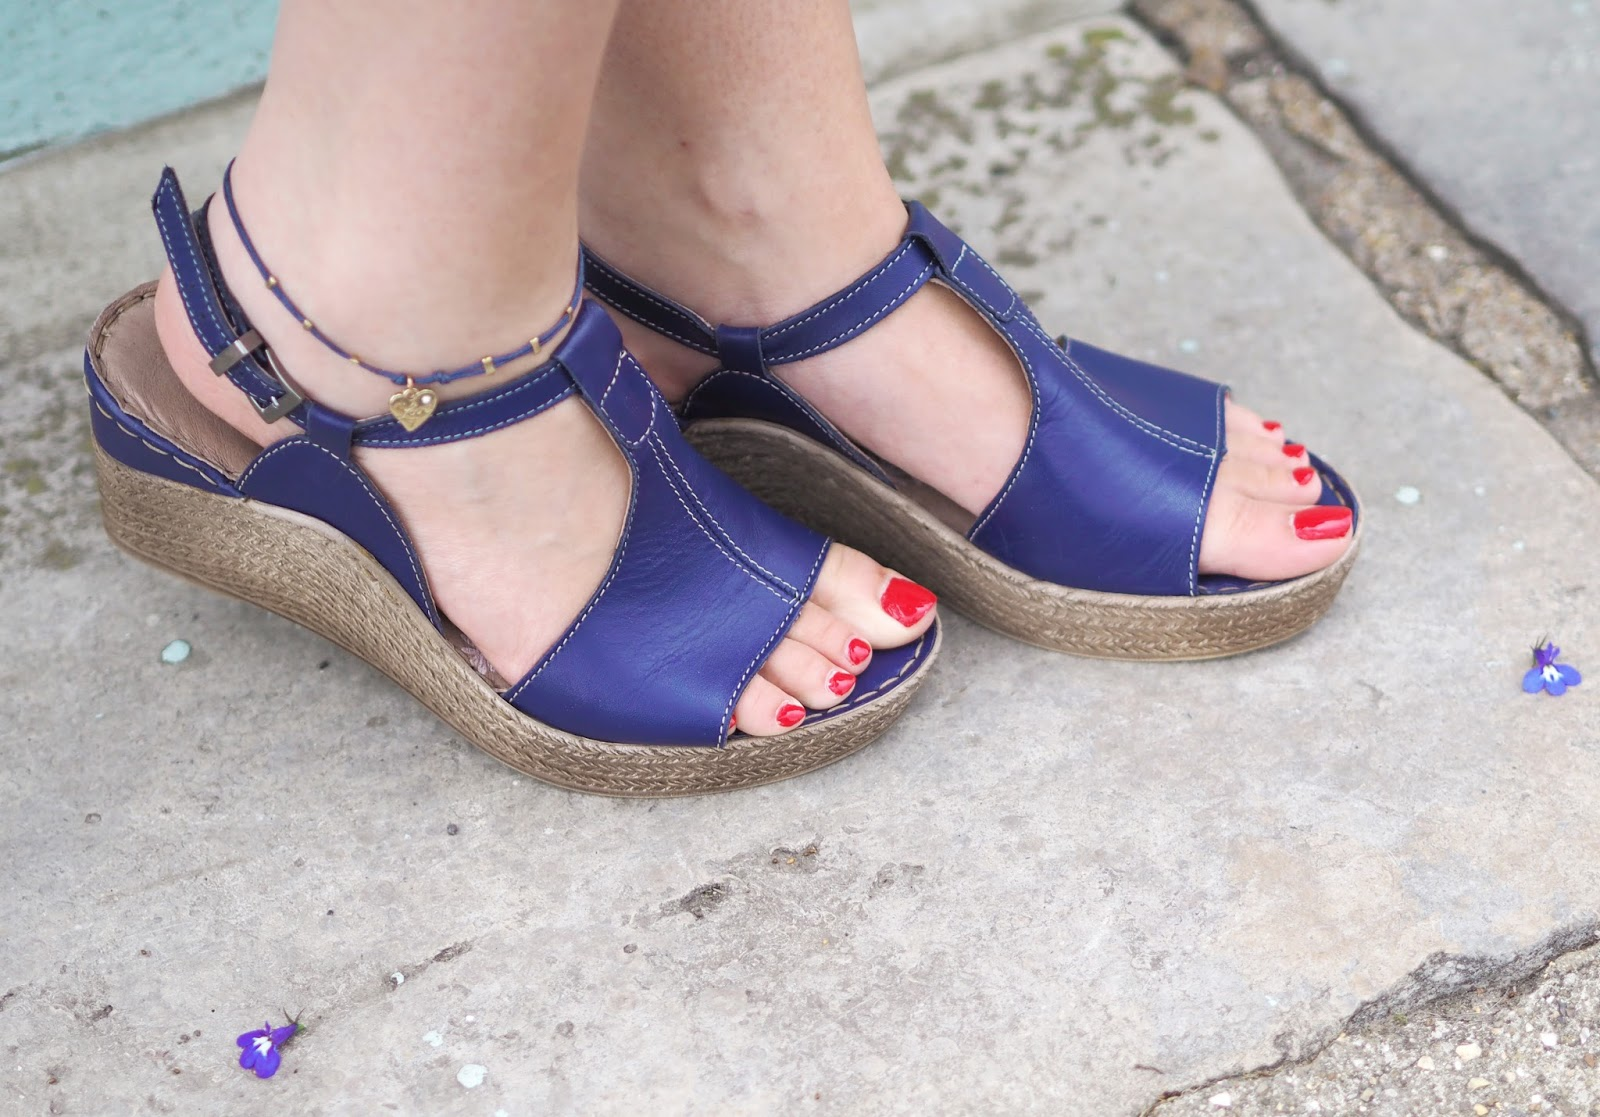 Colourful Wedges Styled 5 Ways feat. Moshulu, Moshulu Shoes, Colourful Shoes, Ways To Wear, Shoe Giveaway, Outfit Ideas, Fashion Blogger, Style Blogger, UK Blogger, Outfit Inspiration, Street Style Fashion, UK Fashion Blogger, Fashion Influencer